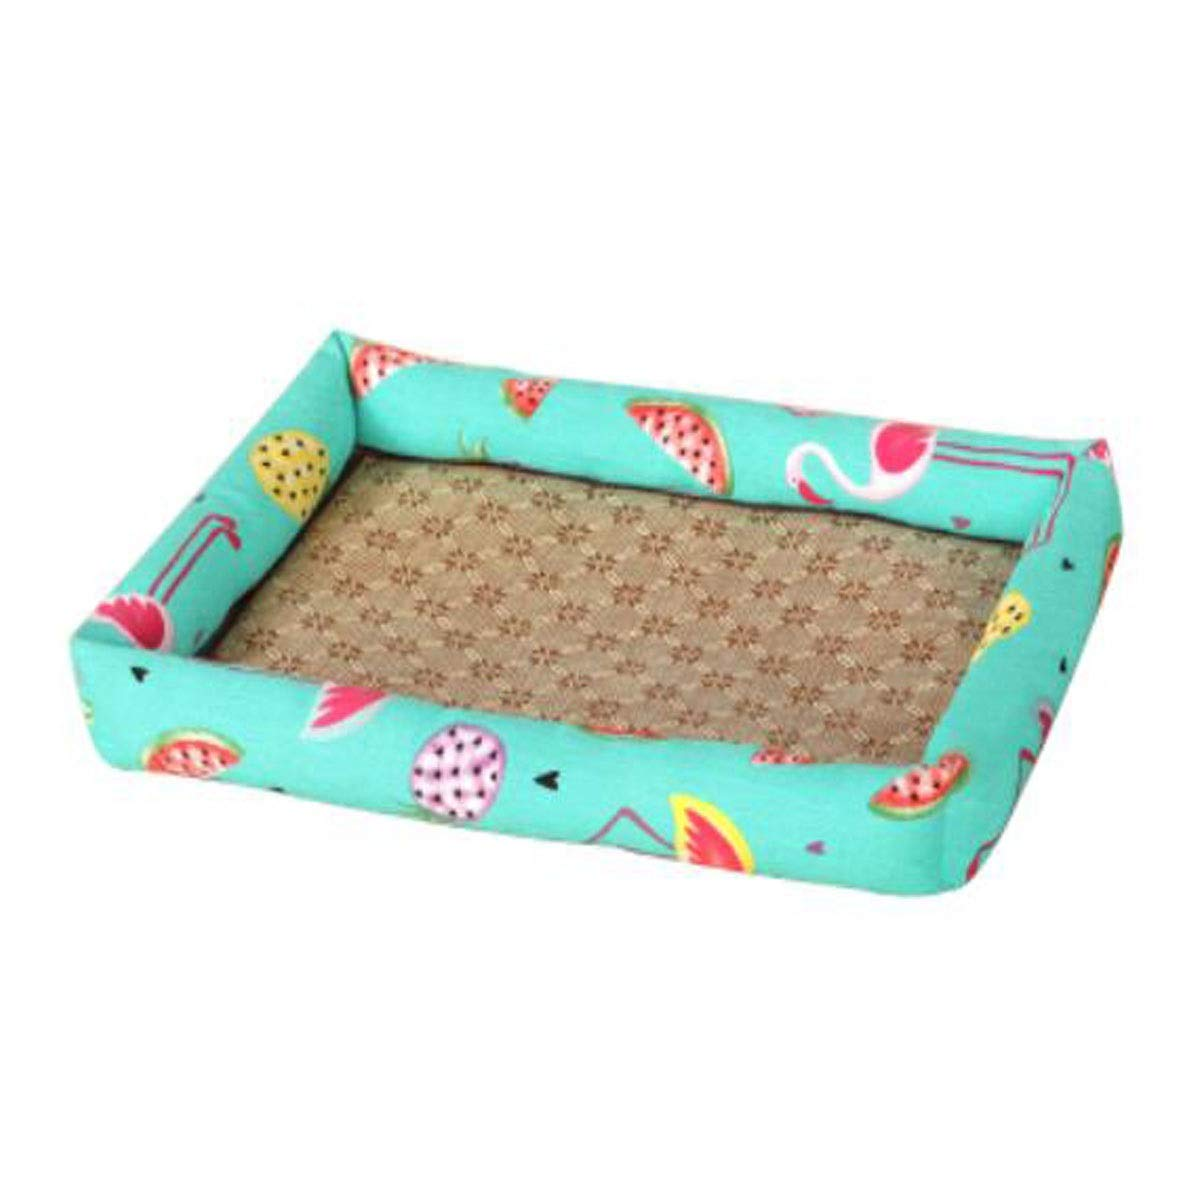 Blue XL blue XL Jiansheng Dog Bed, Spring Large and Medium Dogs and Cats Orthoppidics with Mat Sleeping Mat Bed, Can Be Posited on the Floor Car Dog Dog, Purple, Blue, Yellow XL (Colore: Blue, Dimensione: XL)